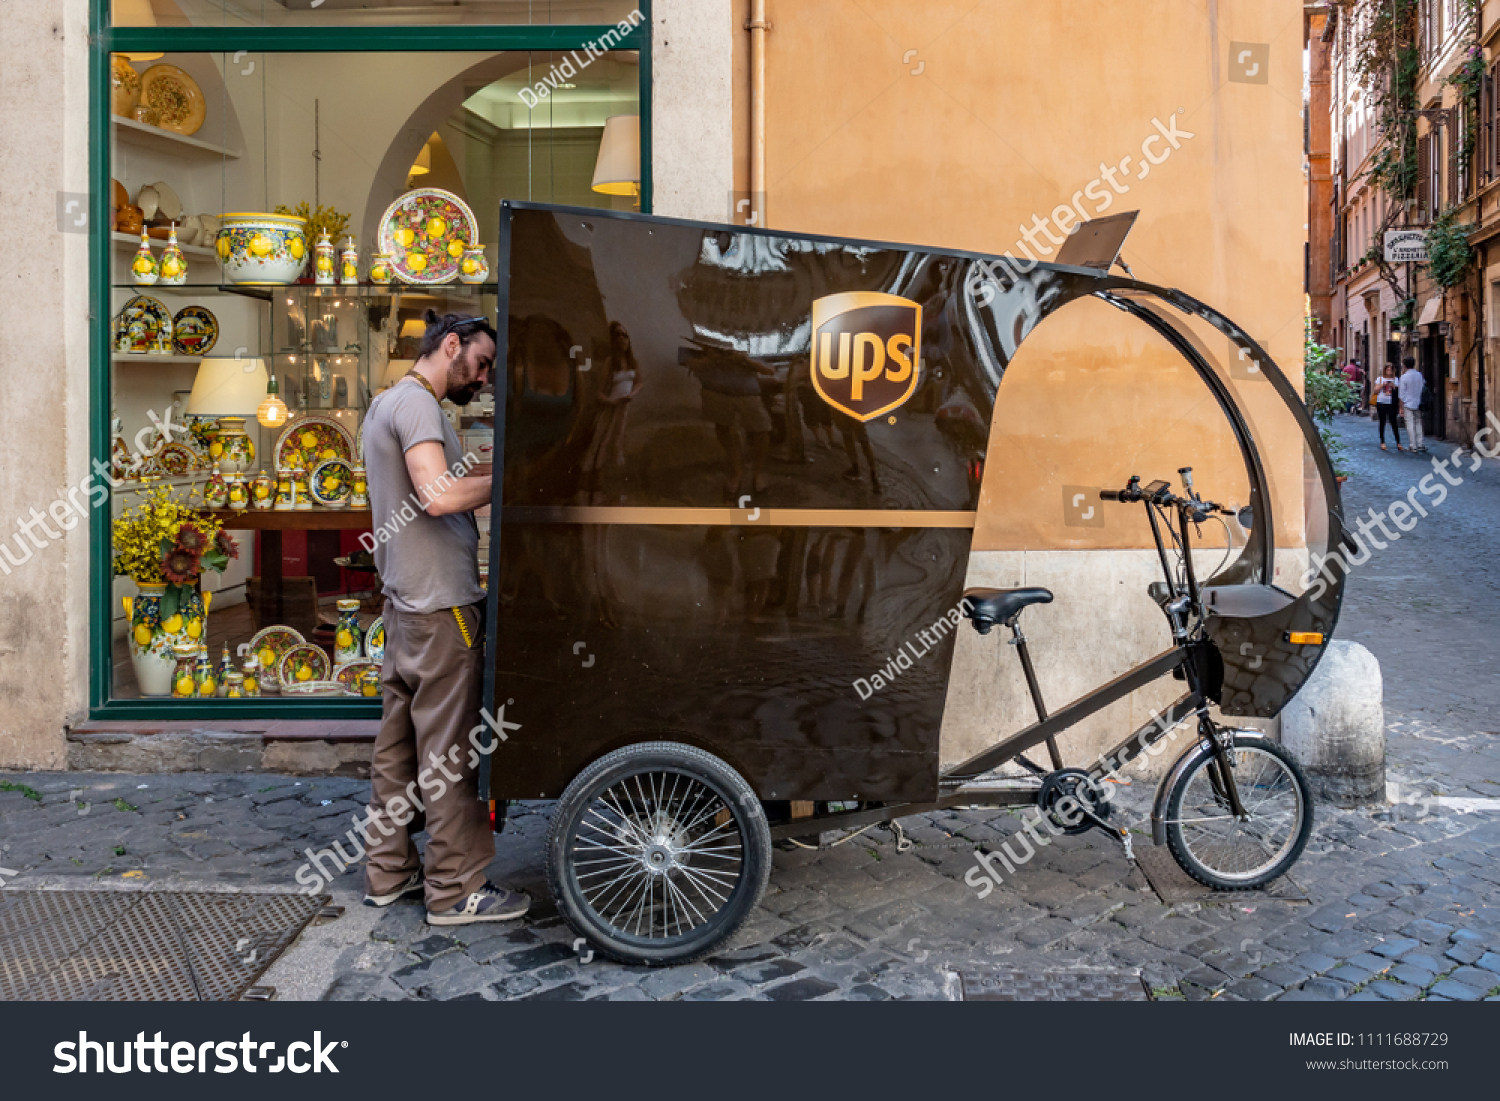 Rome, Italy - June 5, 2018: A UPS delivery man delivers packages using a peddle driven cargo tricycle through the narrow streets of Rome.